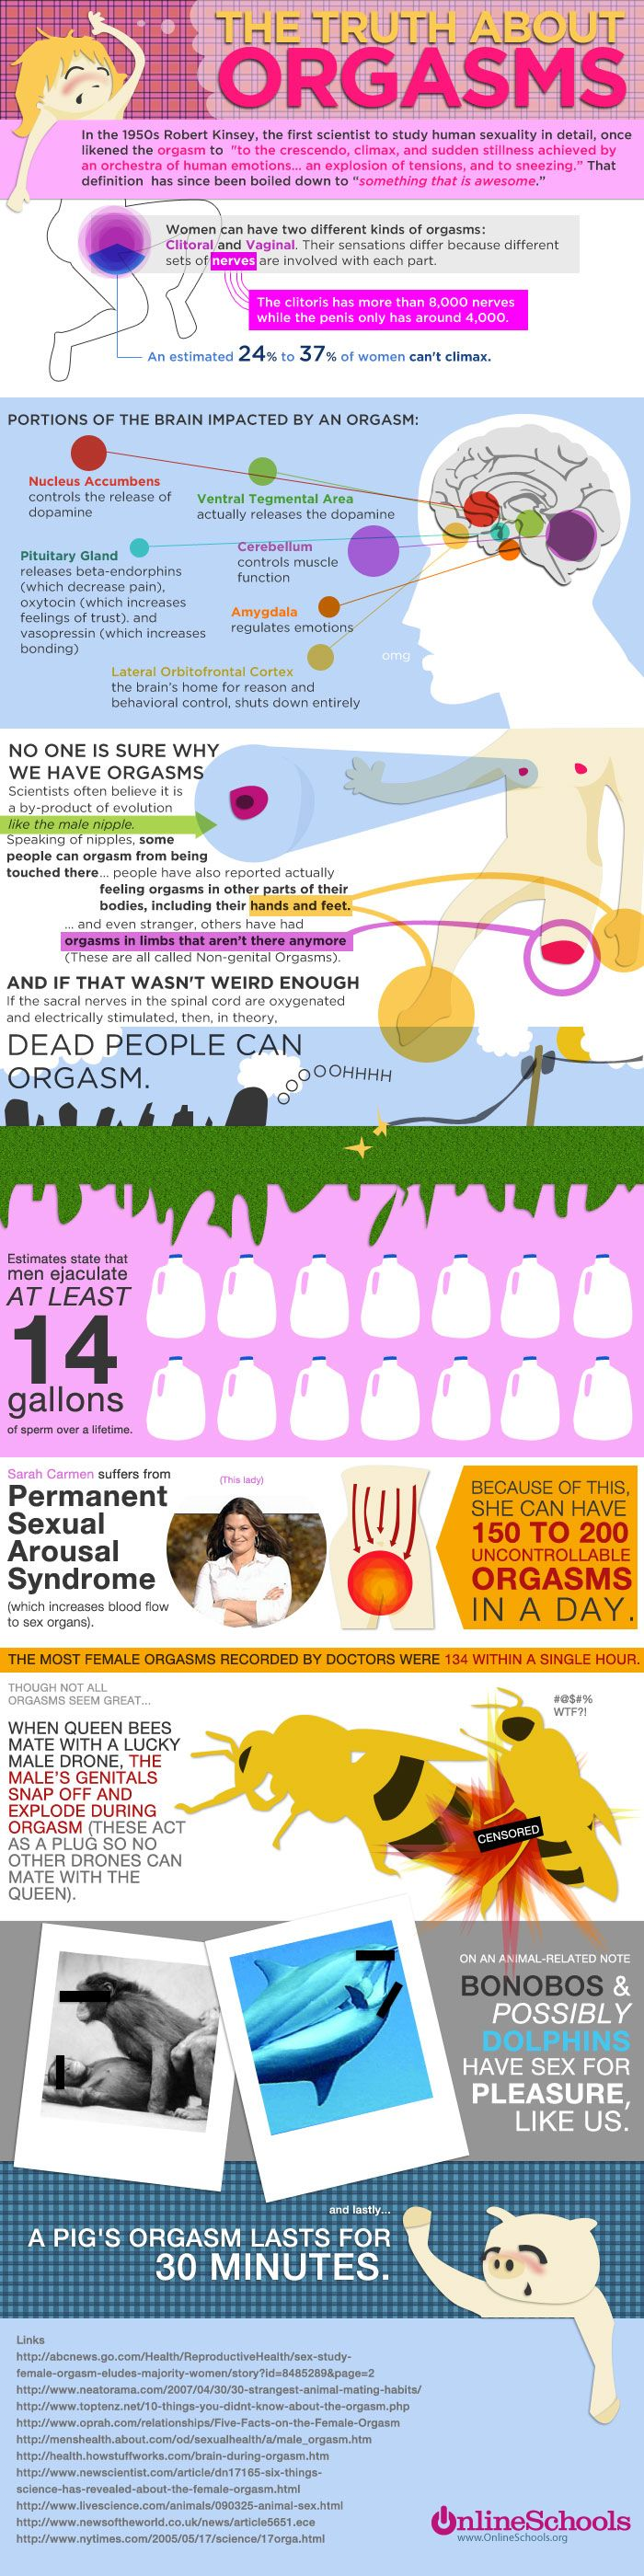 The Truth About Orgasms Book Your Passion Party!  Join my Team! or Shop Online 24/7  and use code PINTEREST20 to receive 20% off your entire order! www.facebook.com/amystoys http://amystoybox.yourpassionconsultant.com  920-707-1700